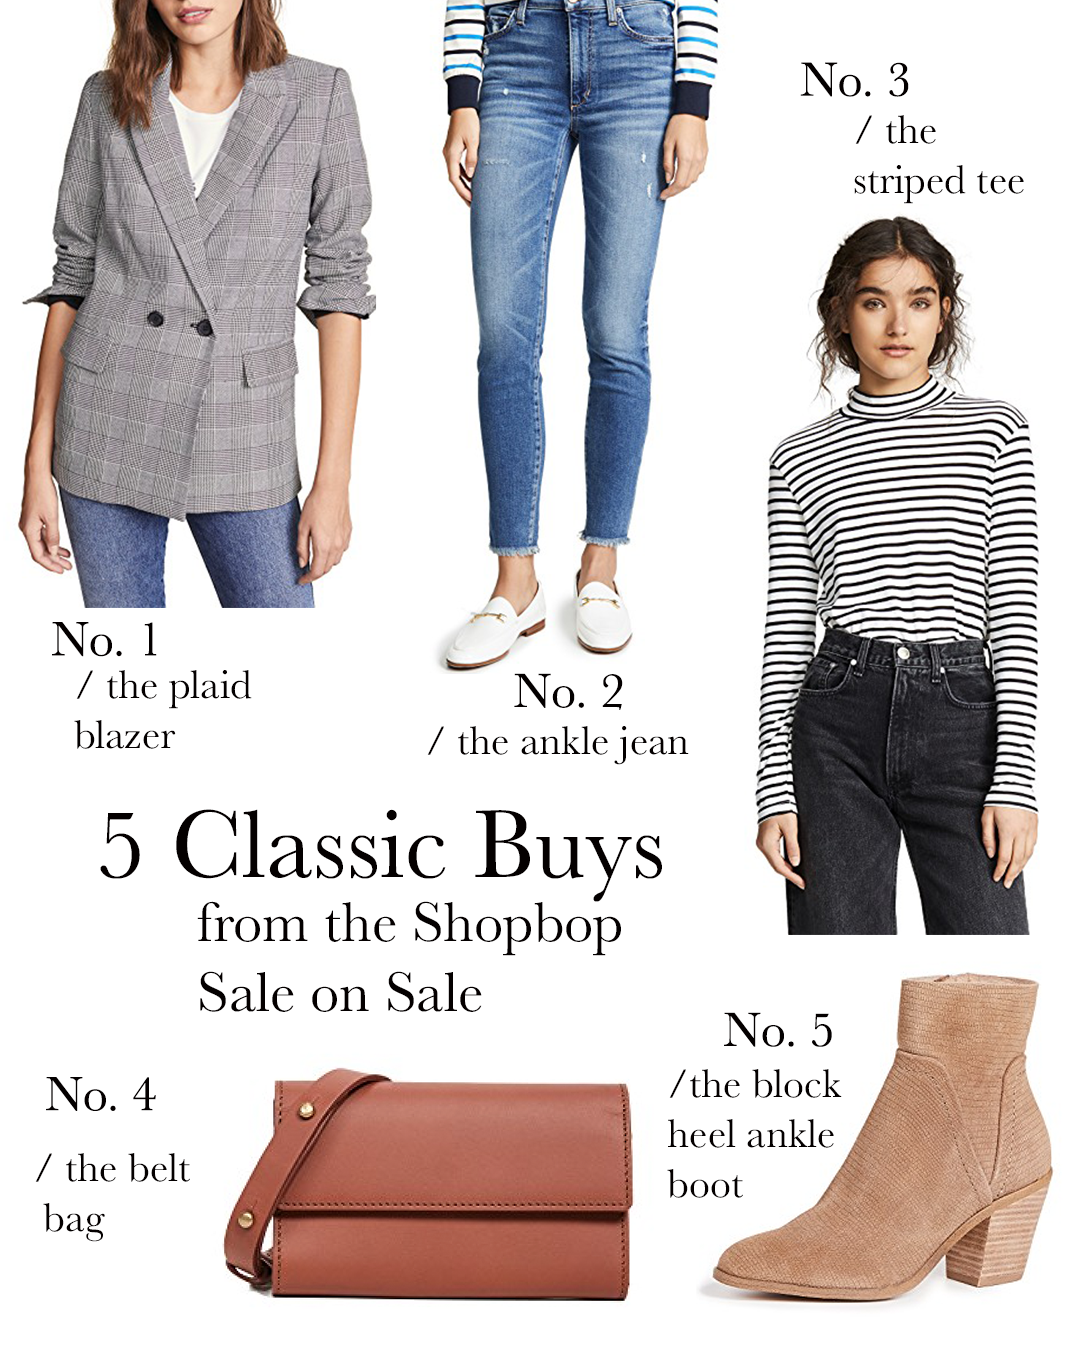 5 Classic Buys from the Shopbop Sale on Sale | www.girlmeetsgold.com